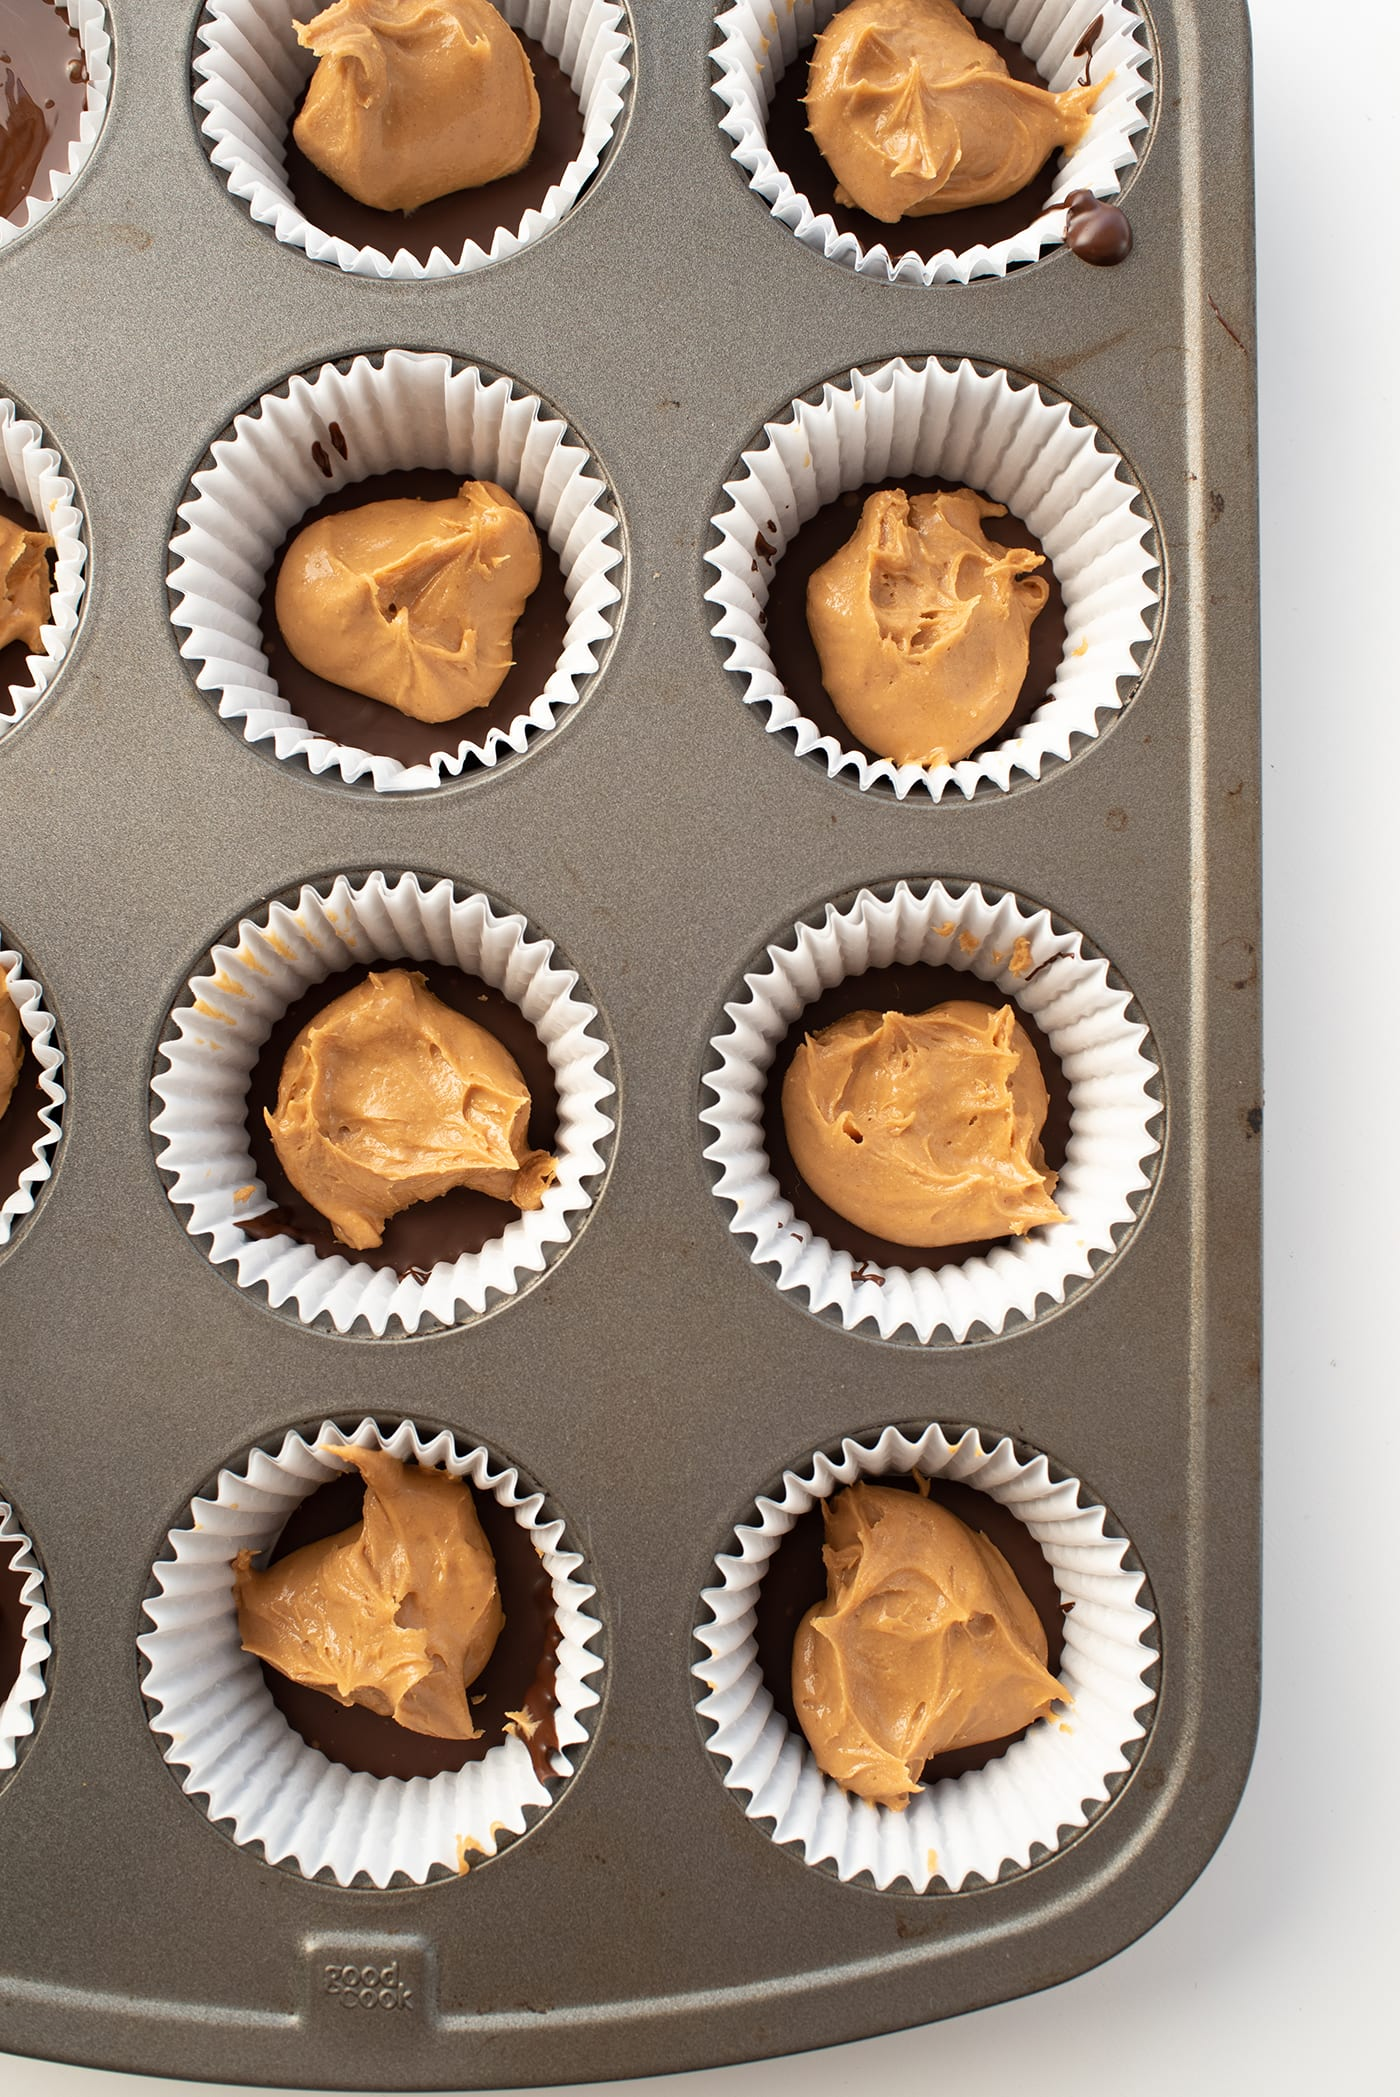 Homemade Reese's Peanut Butter Cups Recipe